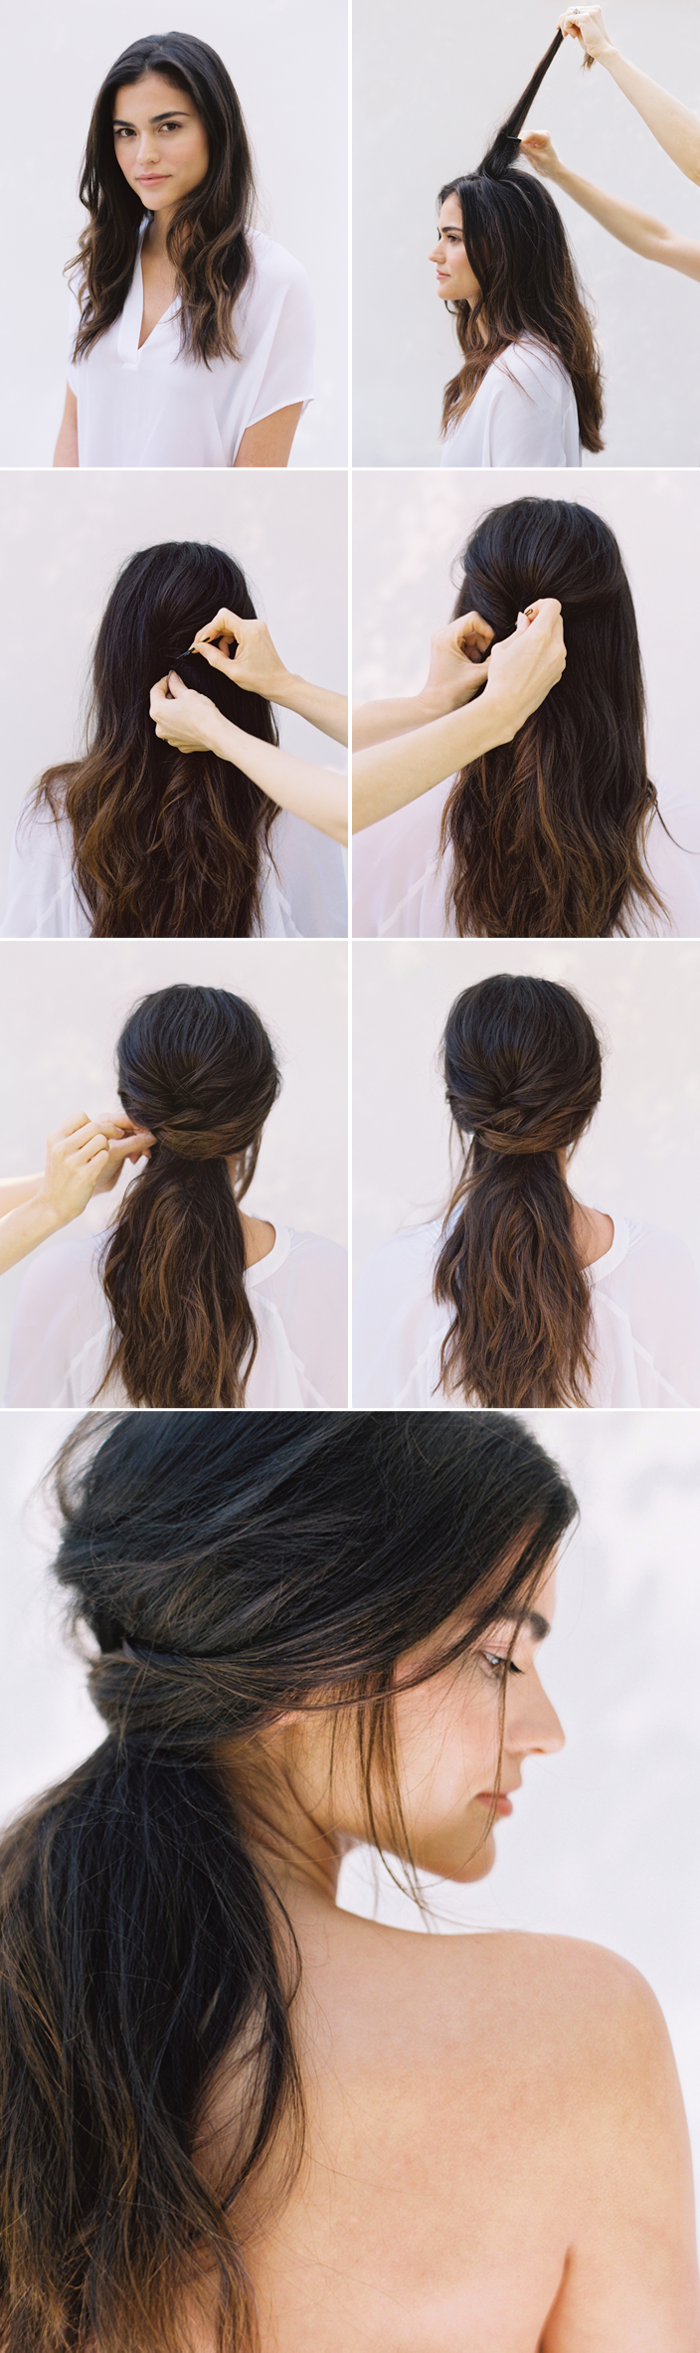 diy-half-up-half-down-wedding-hairstyles-for-long-hair